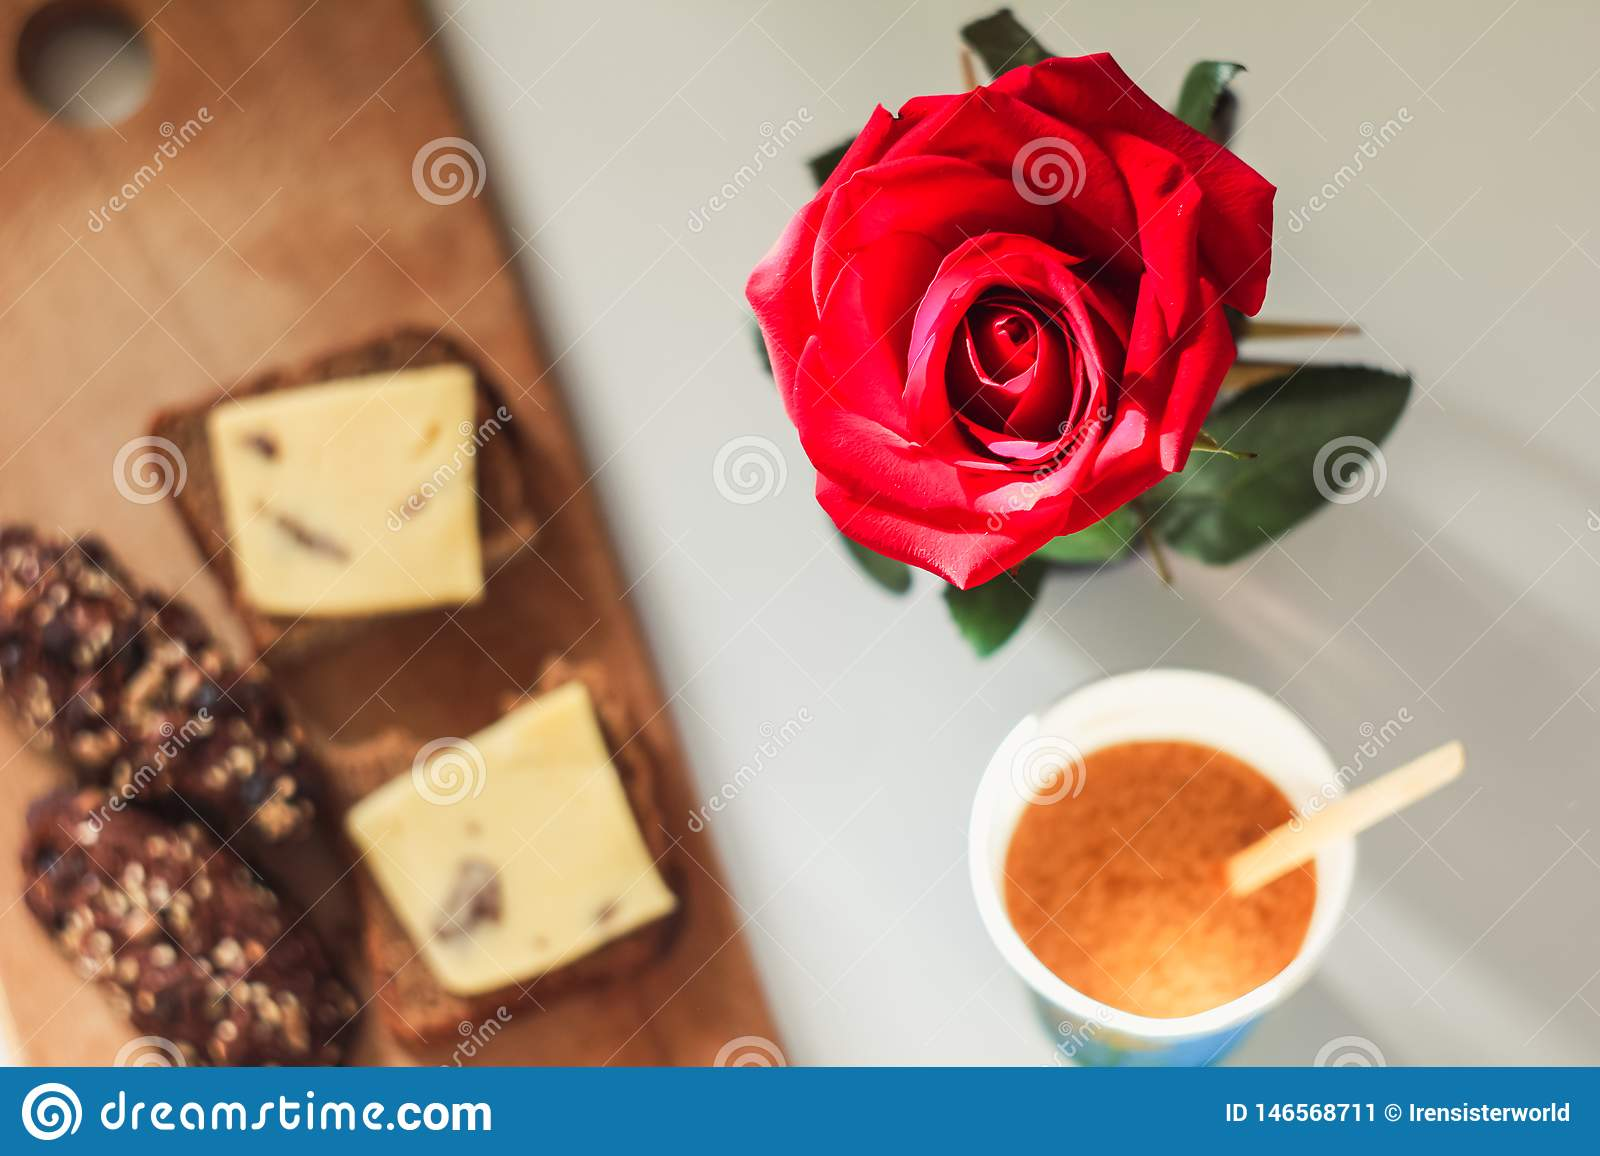 Rose on a blurred background of breakfast